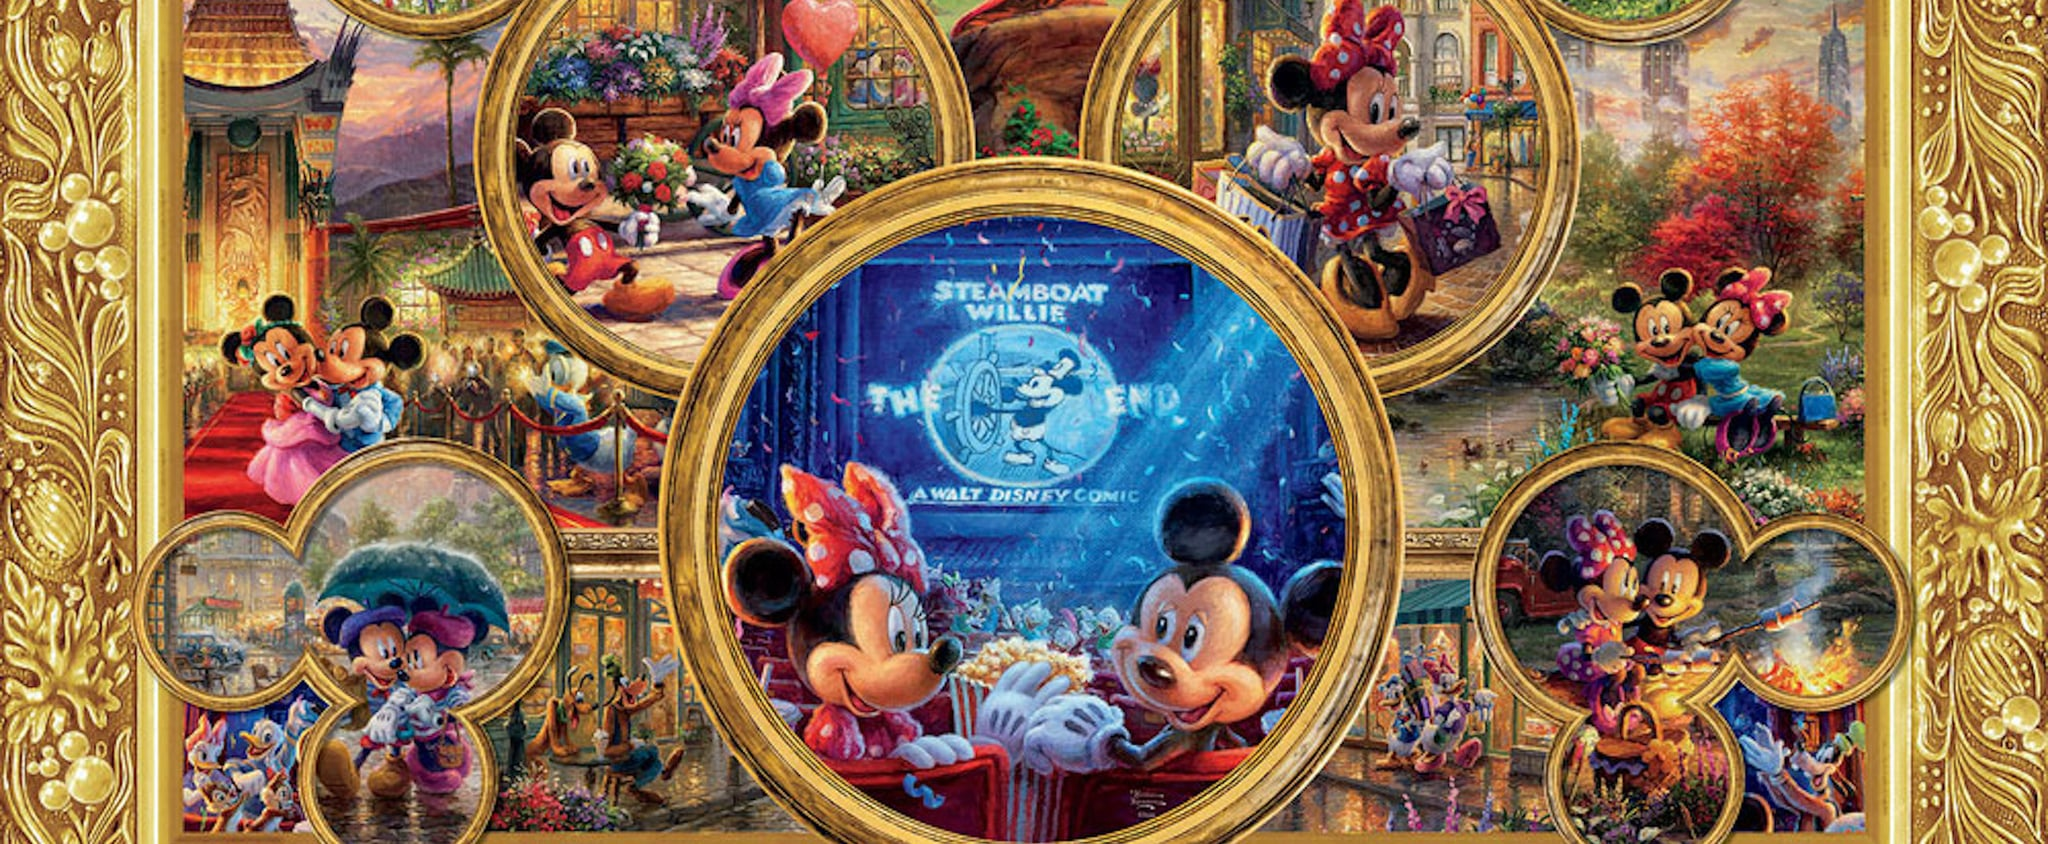 The Best Disney Jigsaw Puzzles For Adults